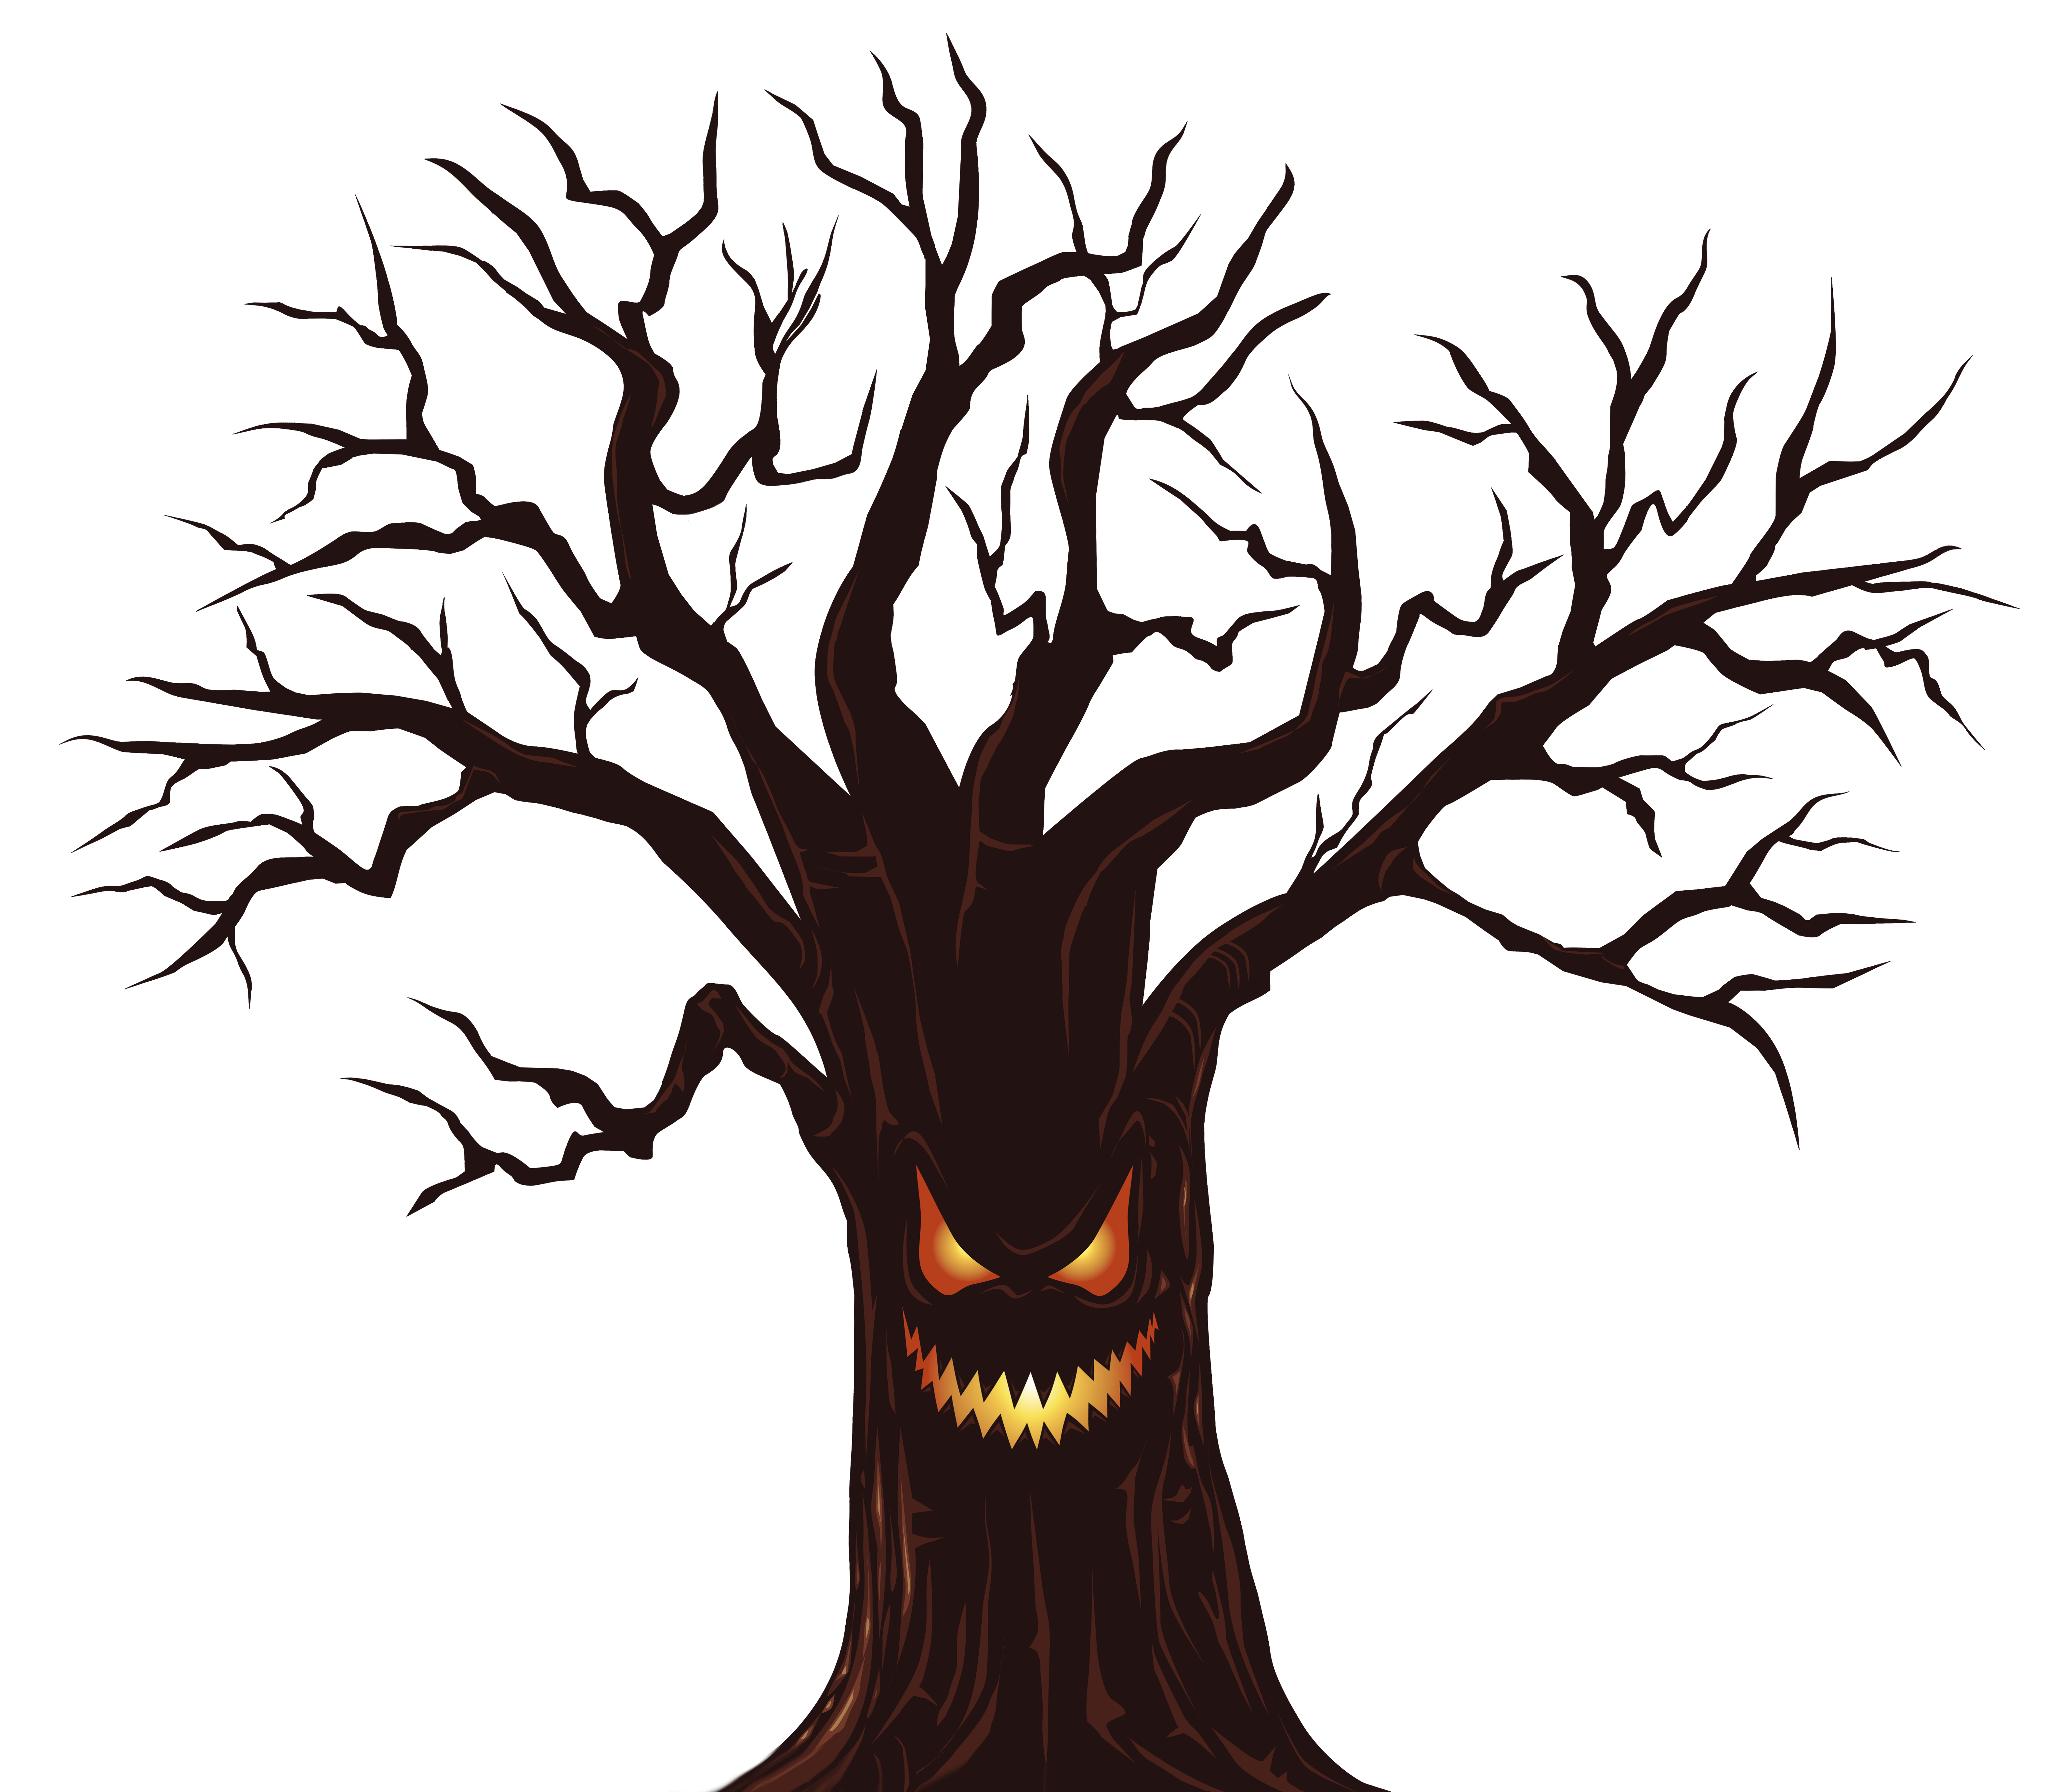 Spooky clipart. Halloween tree png image